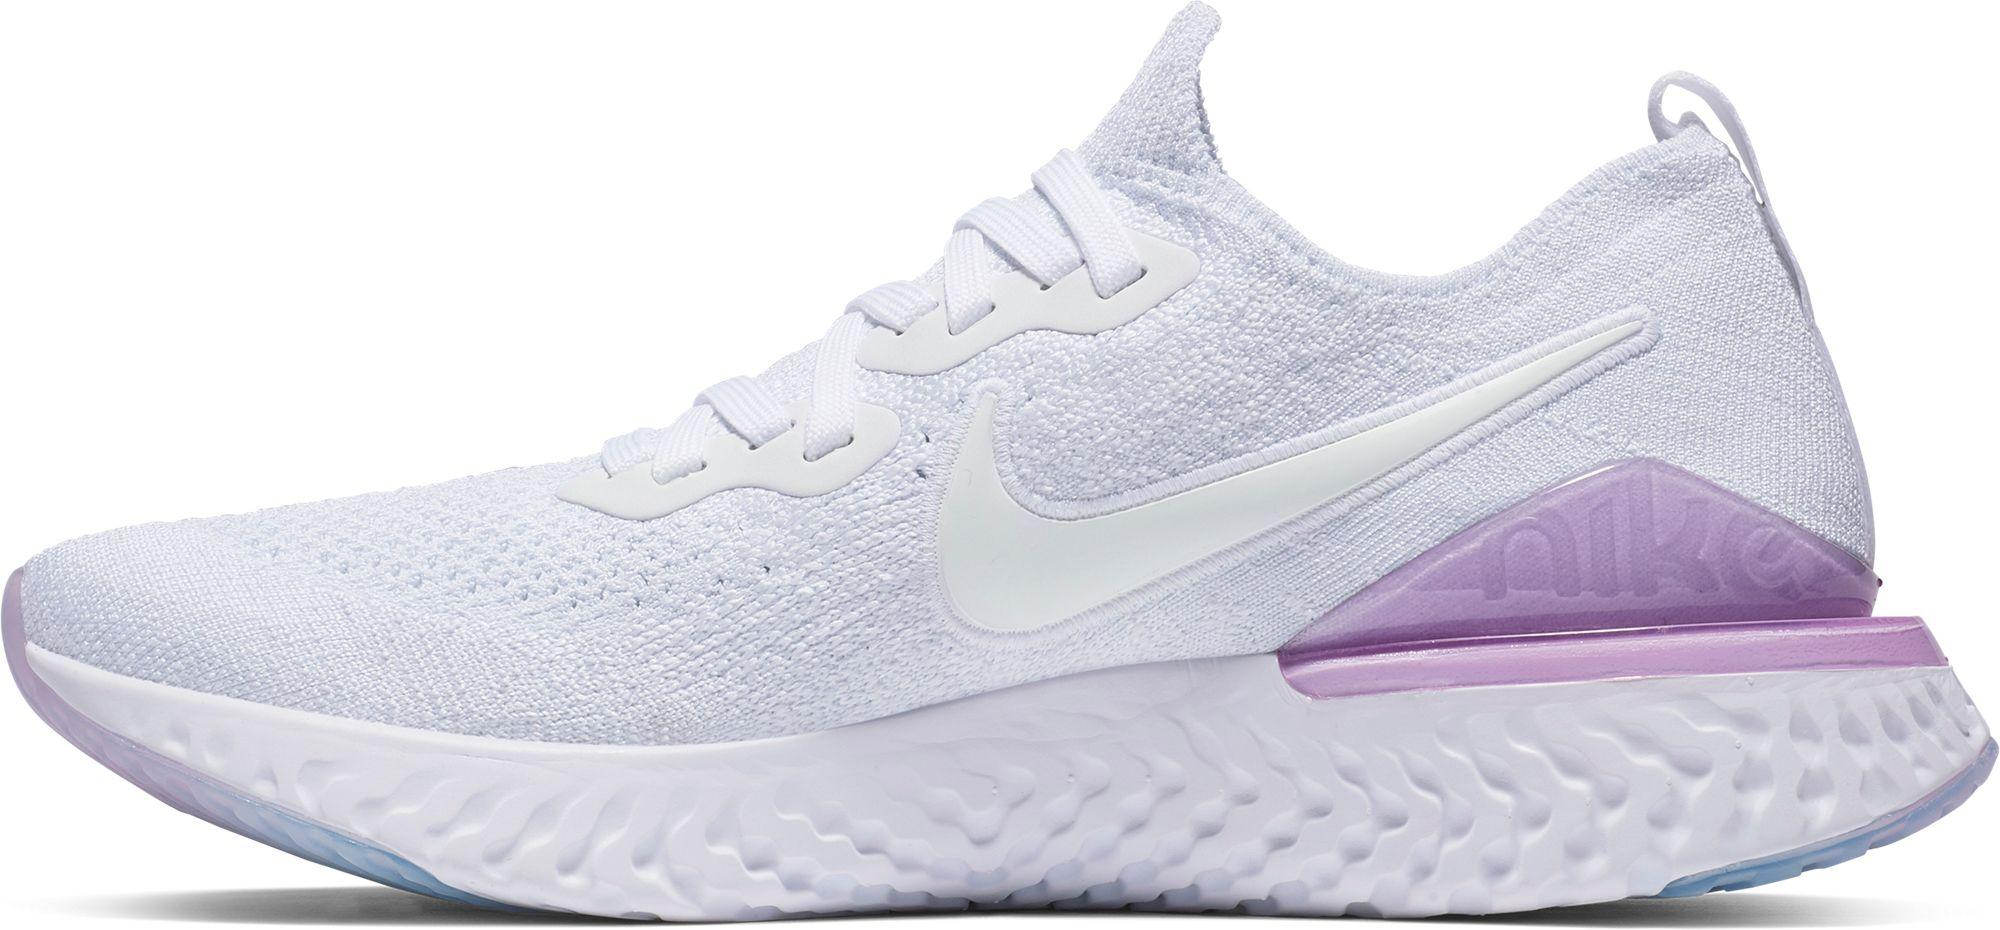 really cheap vast selection cheap for discount Nike Rubber Epic React Flyknit 2 Shoes - Size 6w in White/ White ...